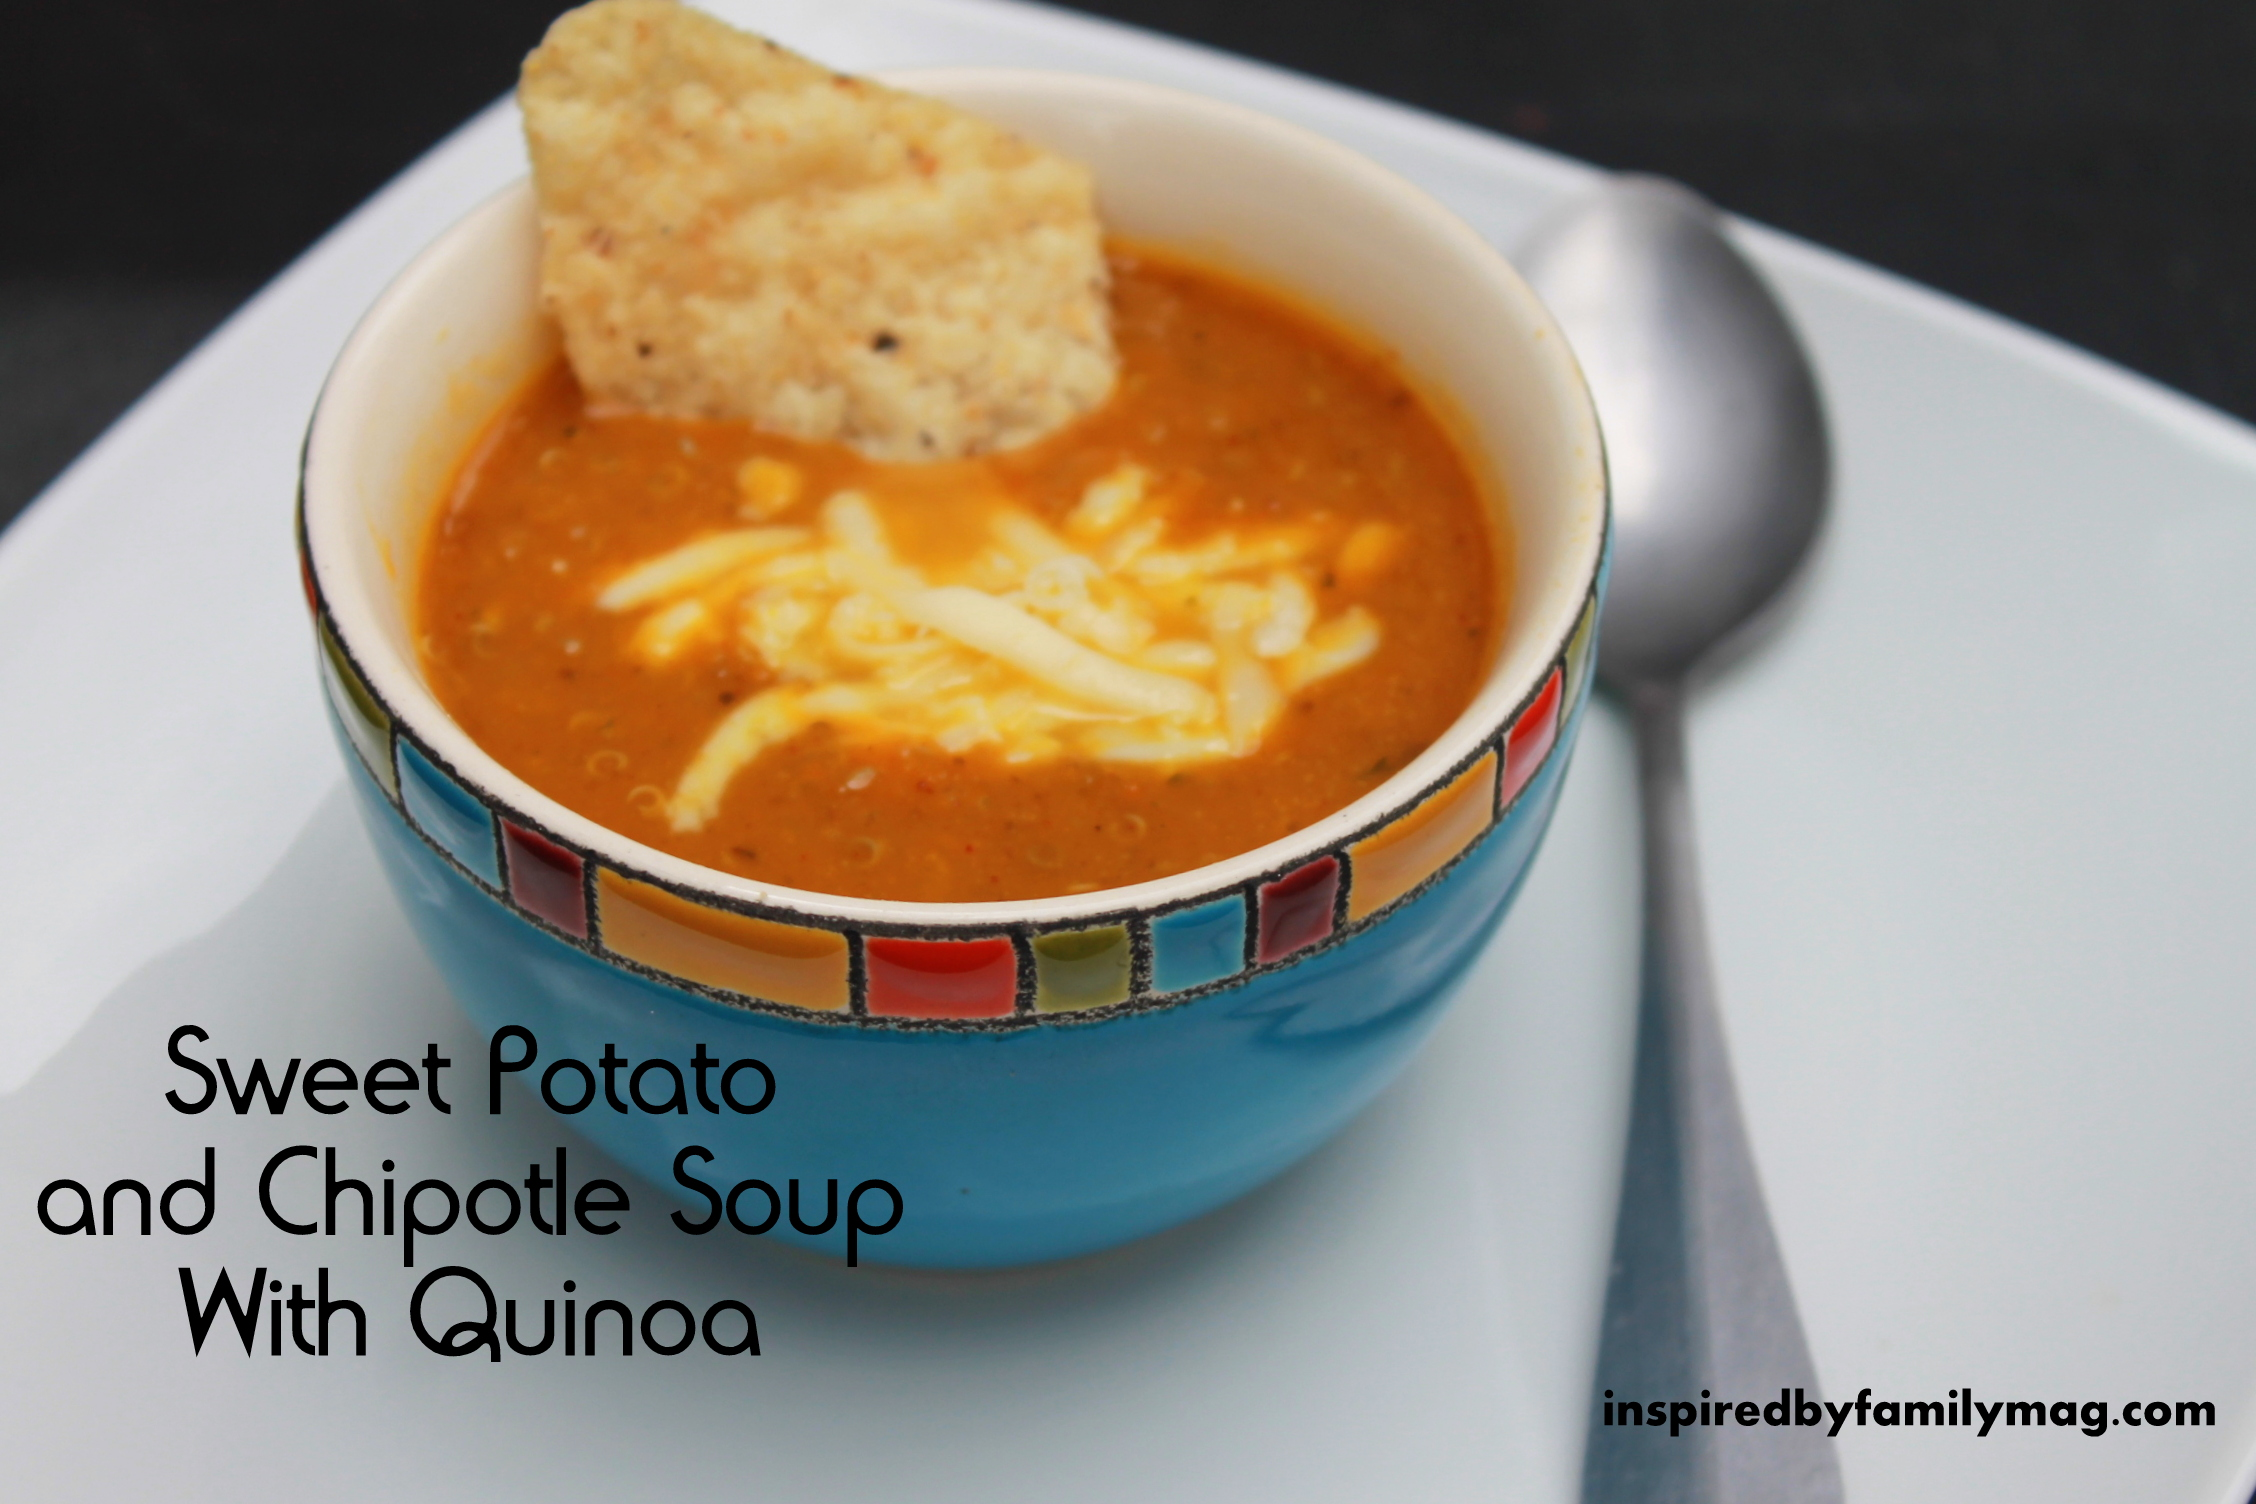 Sweet Potato Chipotle Soup w/ Quinoa - Inspired by Family